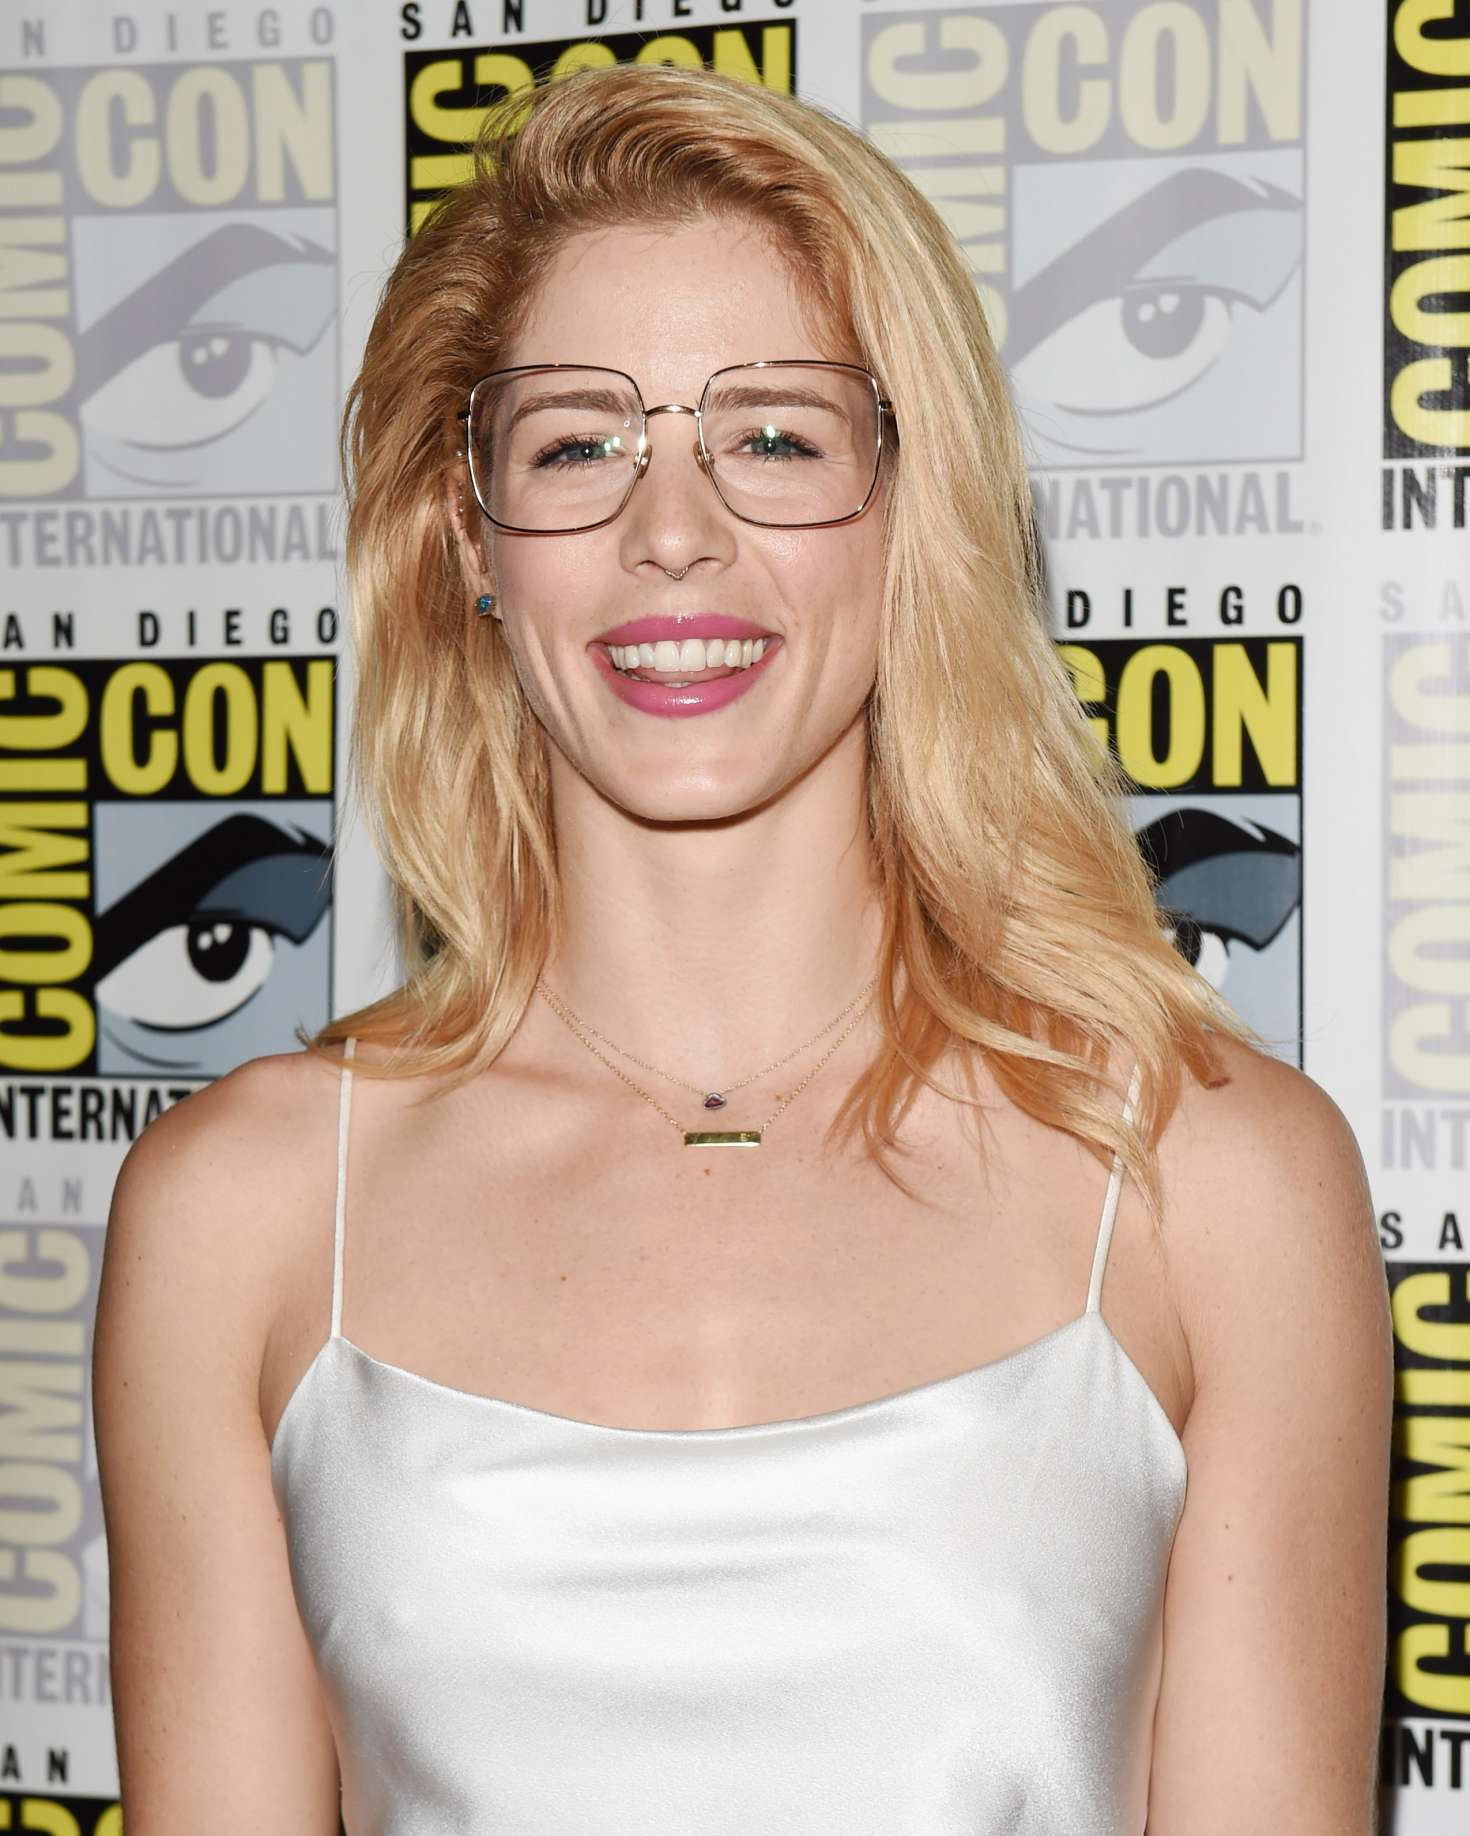 Bett Comic Emily Bett Rickards Arrow Press Call At 2018 Comic Con In San